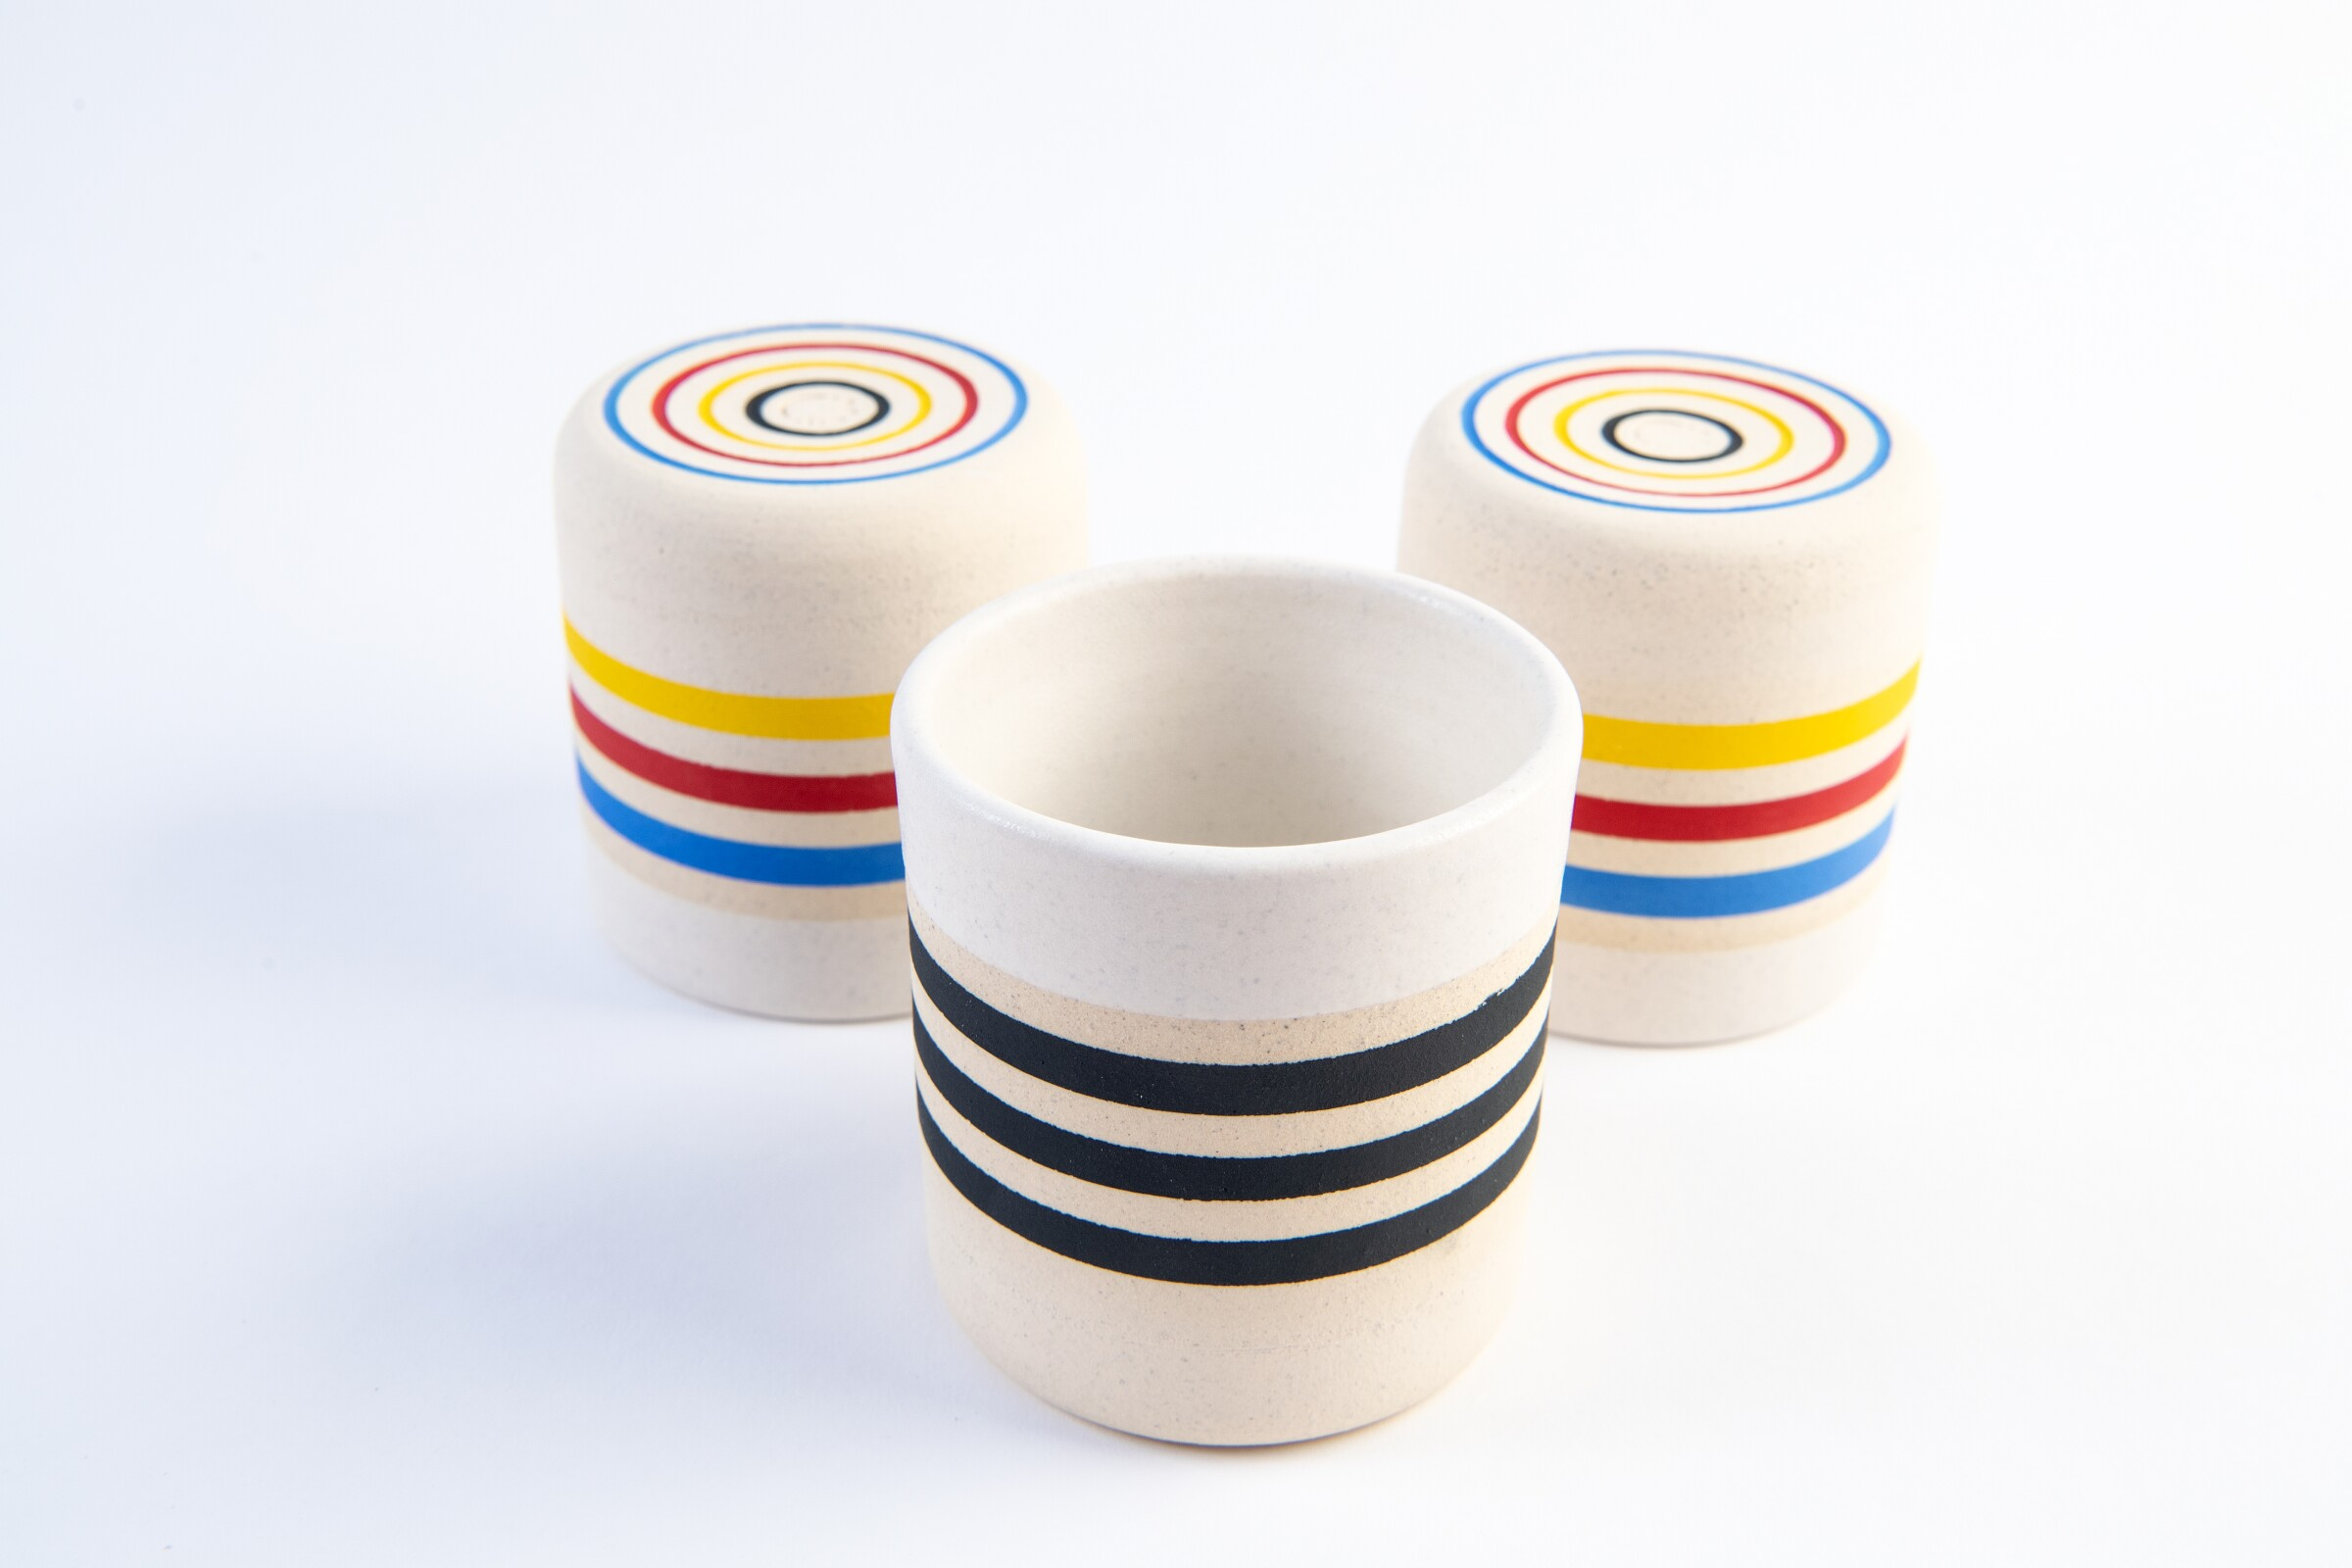 Quille mugs from Neenineen.